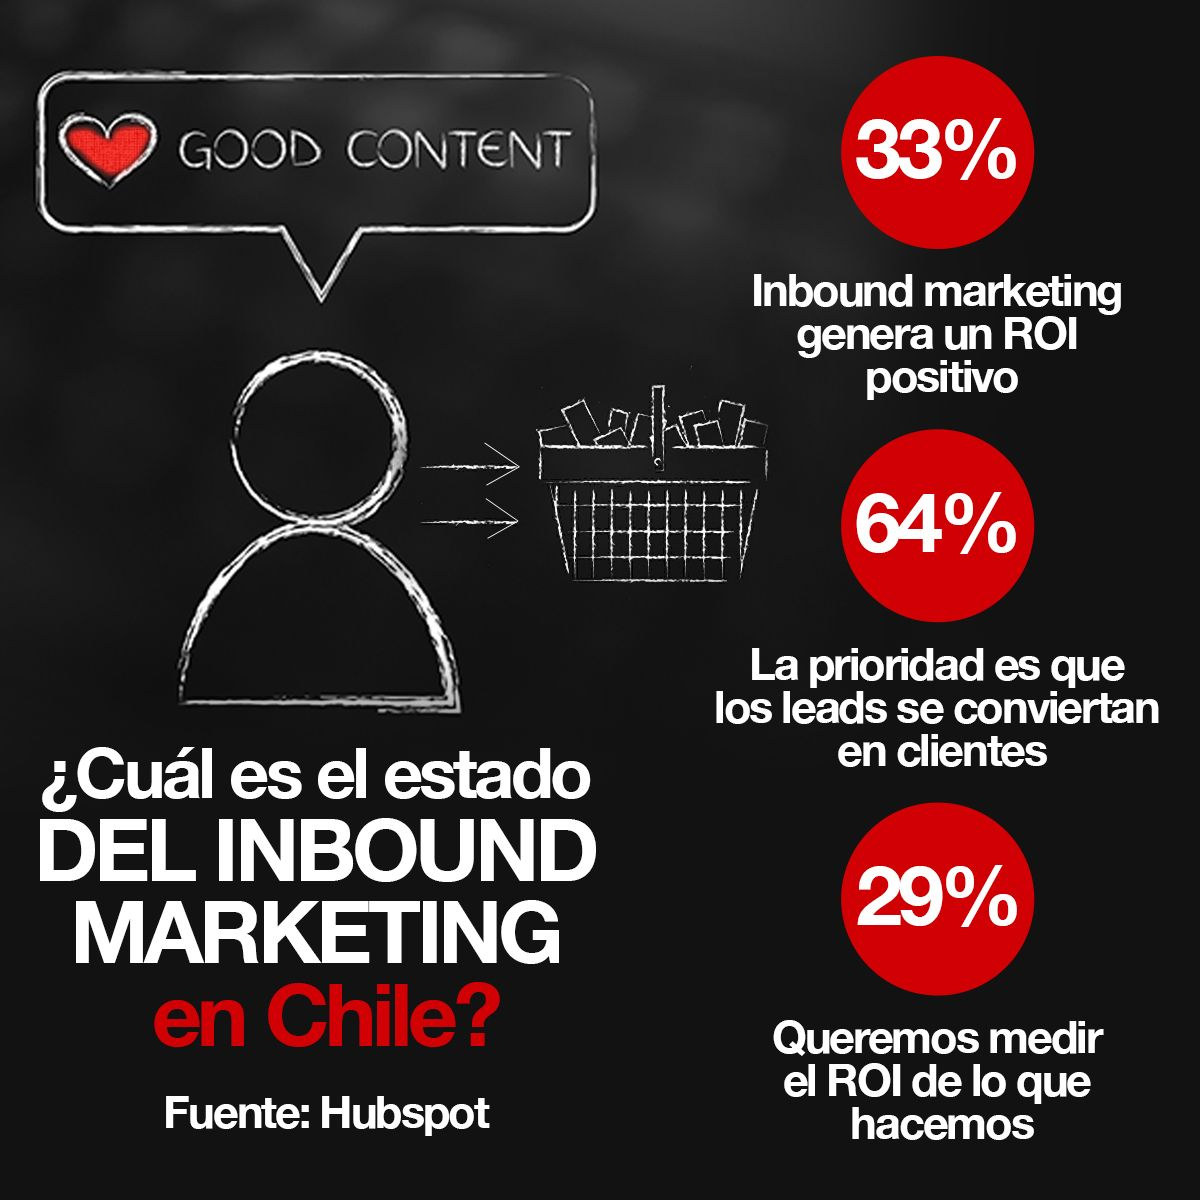 ¿Cuál es el estado del inbound marketing en Chile? 33%